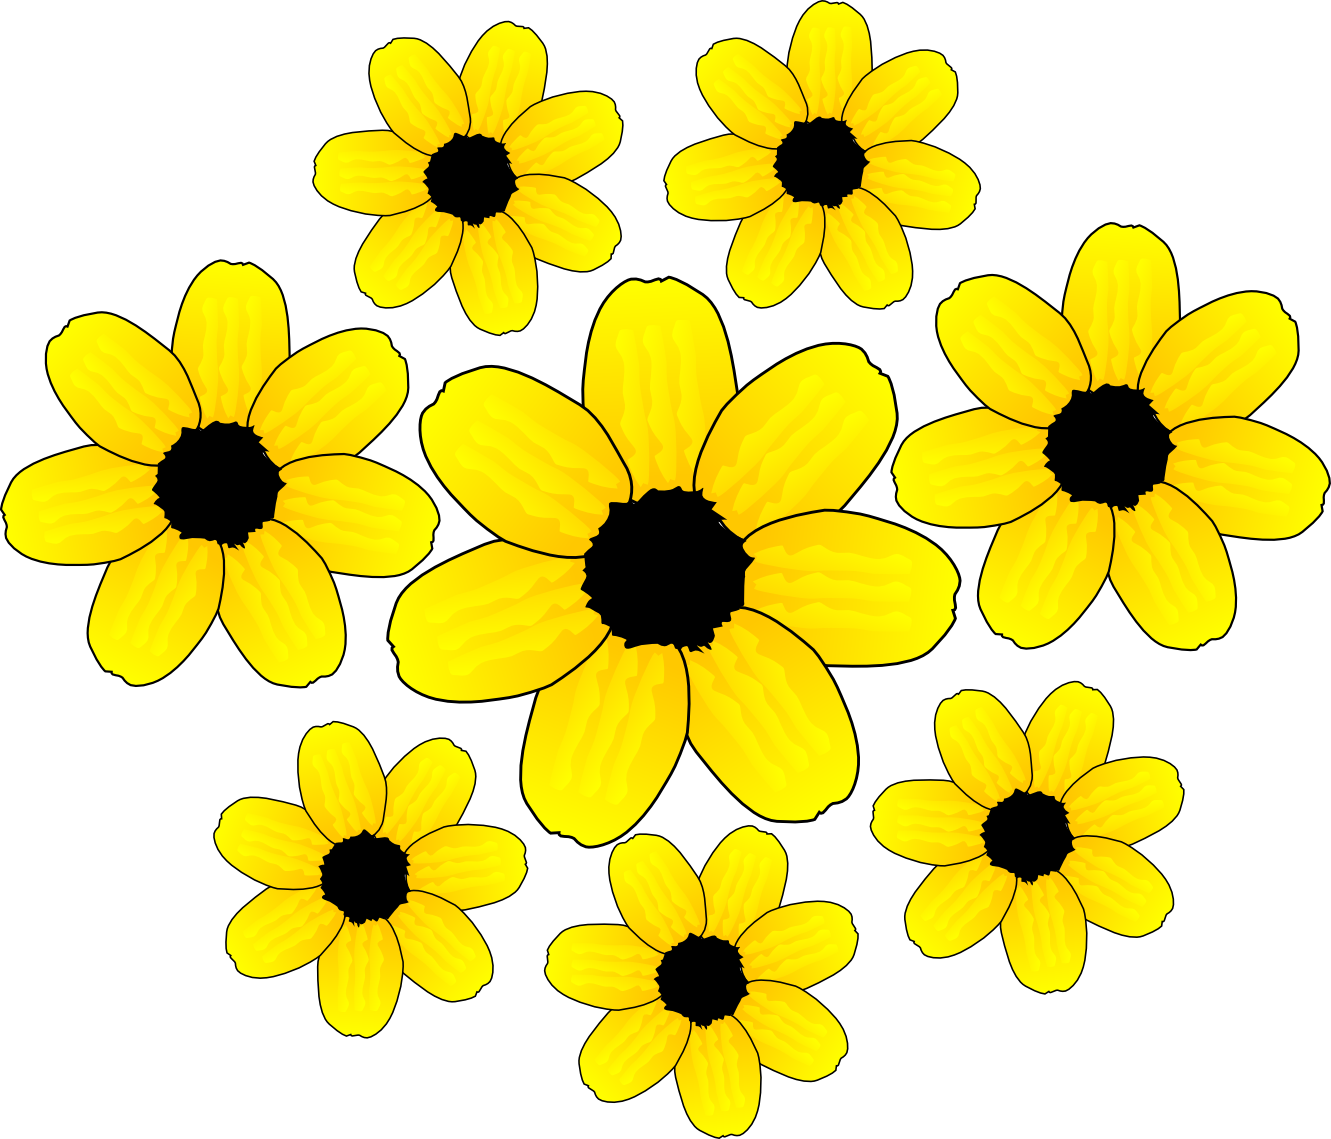 Yellow Flowers Clipart - ClipArt Best